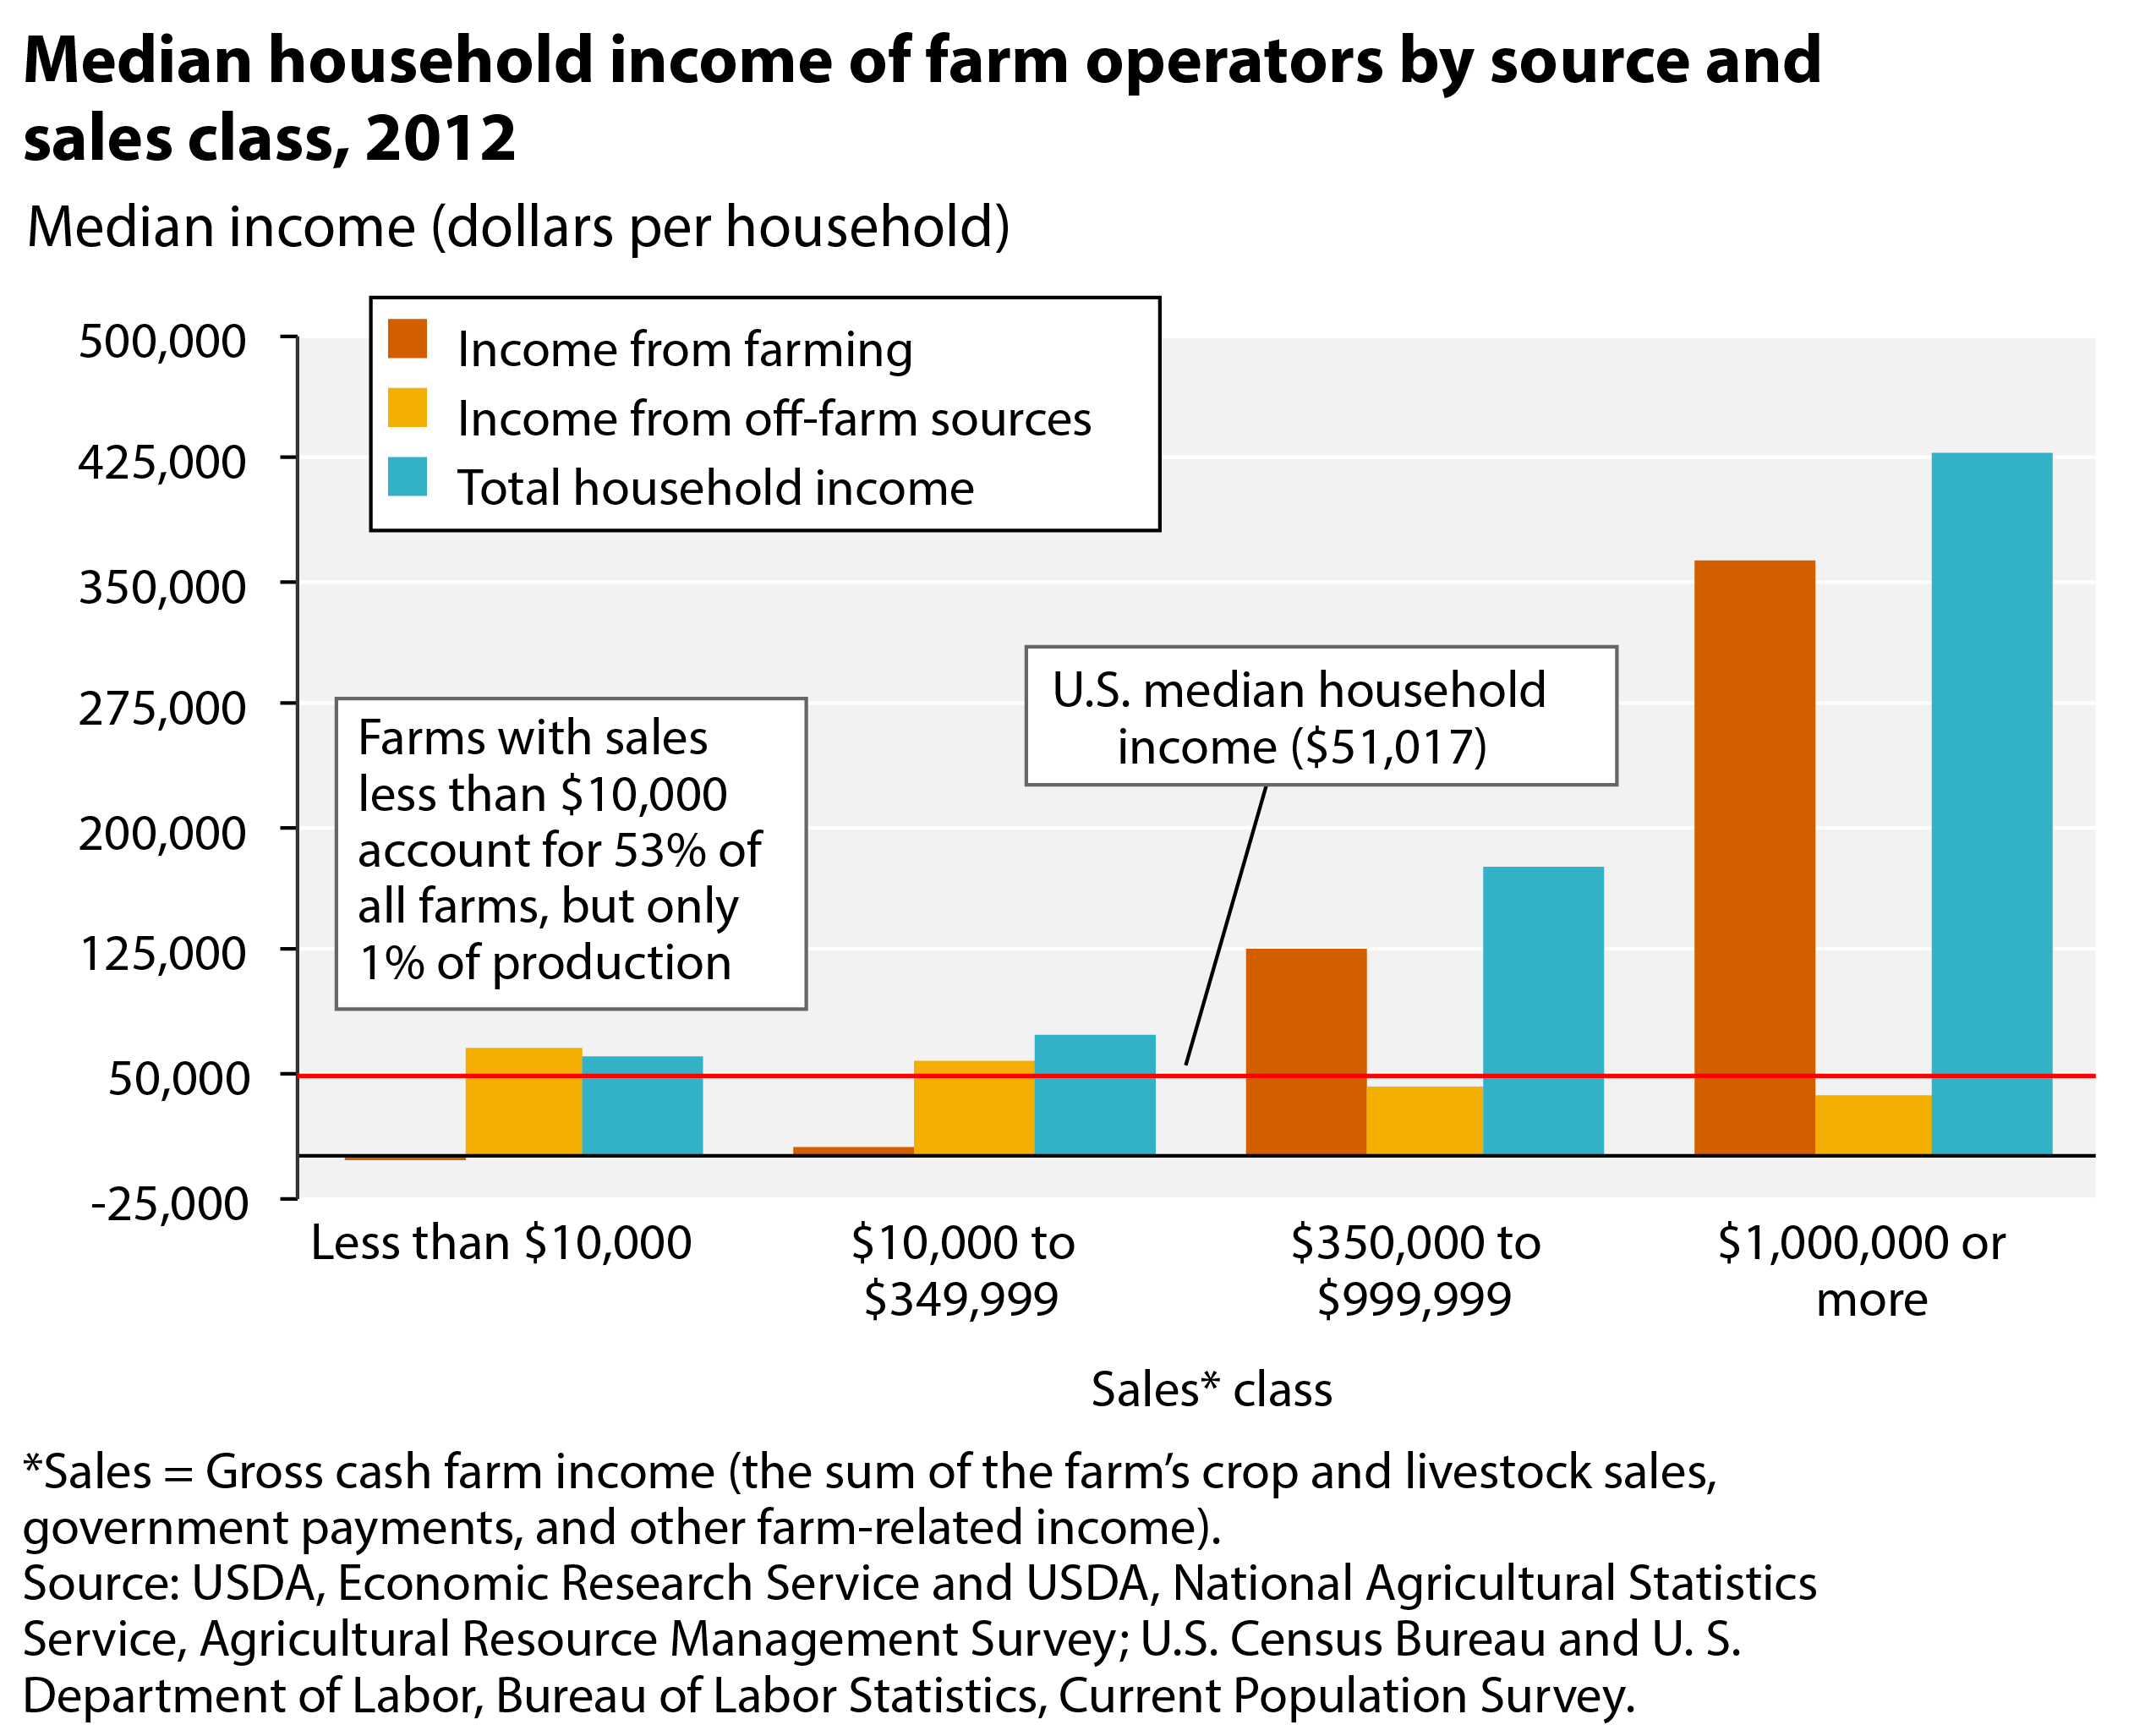 agriculture income Agricultural income is exempt from income tax under section 10(1) of the income tax act, 1961 however, its included, for rate purposes, in computing the income.